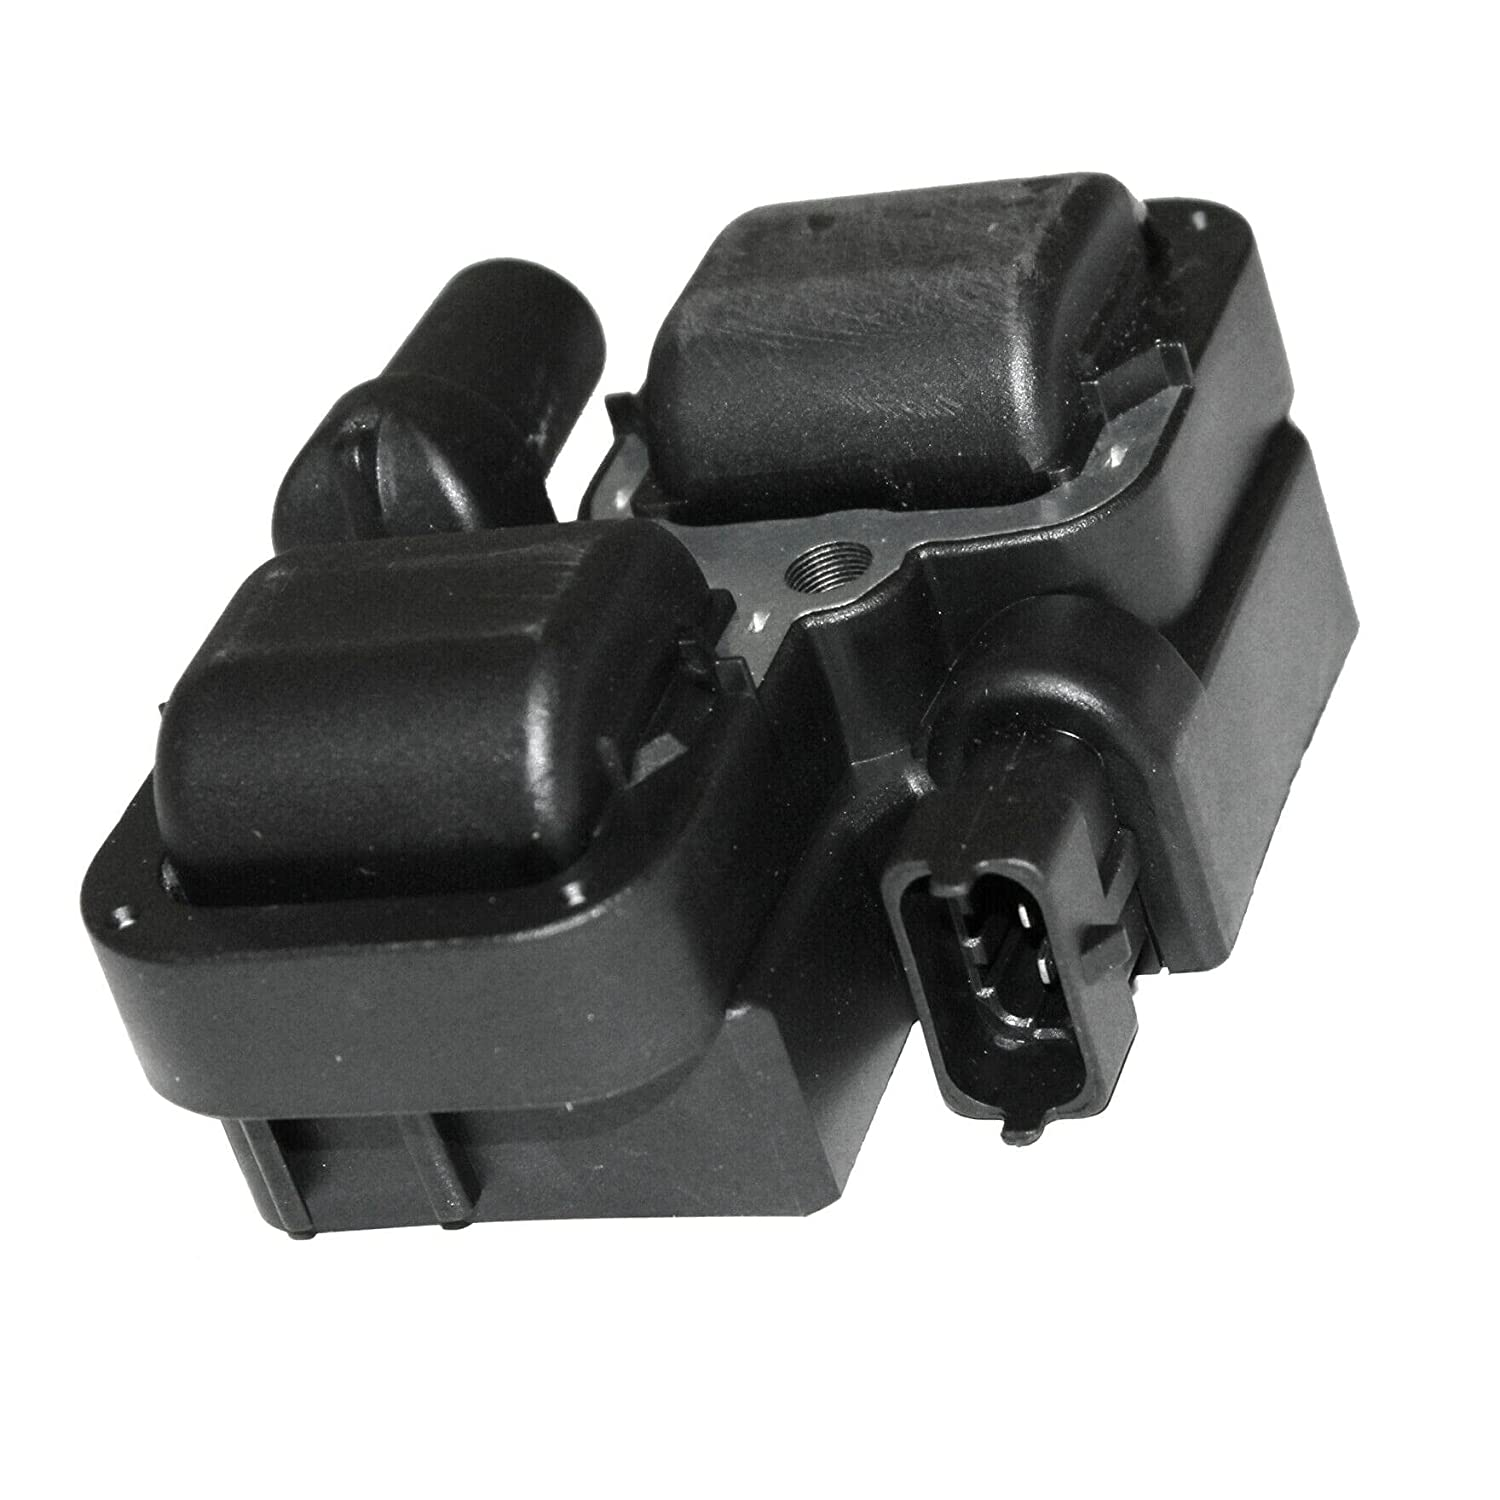 Ignition Coil for forCan-Am Outlander 800R DPS Xt specialty shop Xmr Max 66% OFF EFI 4X4